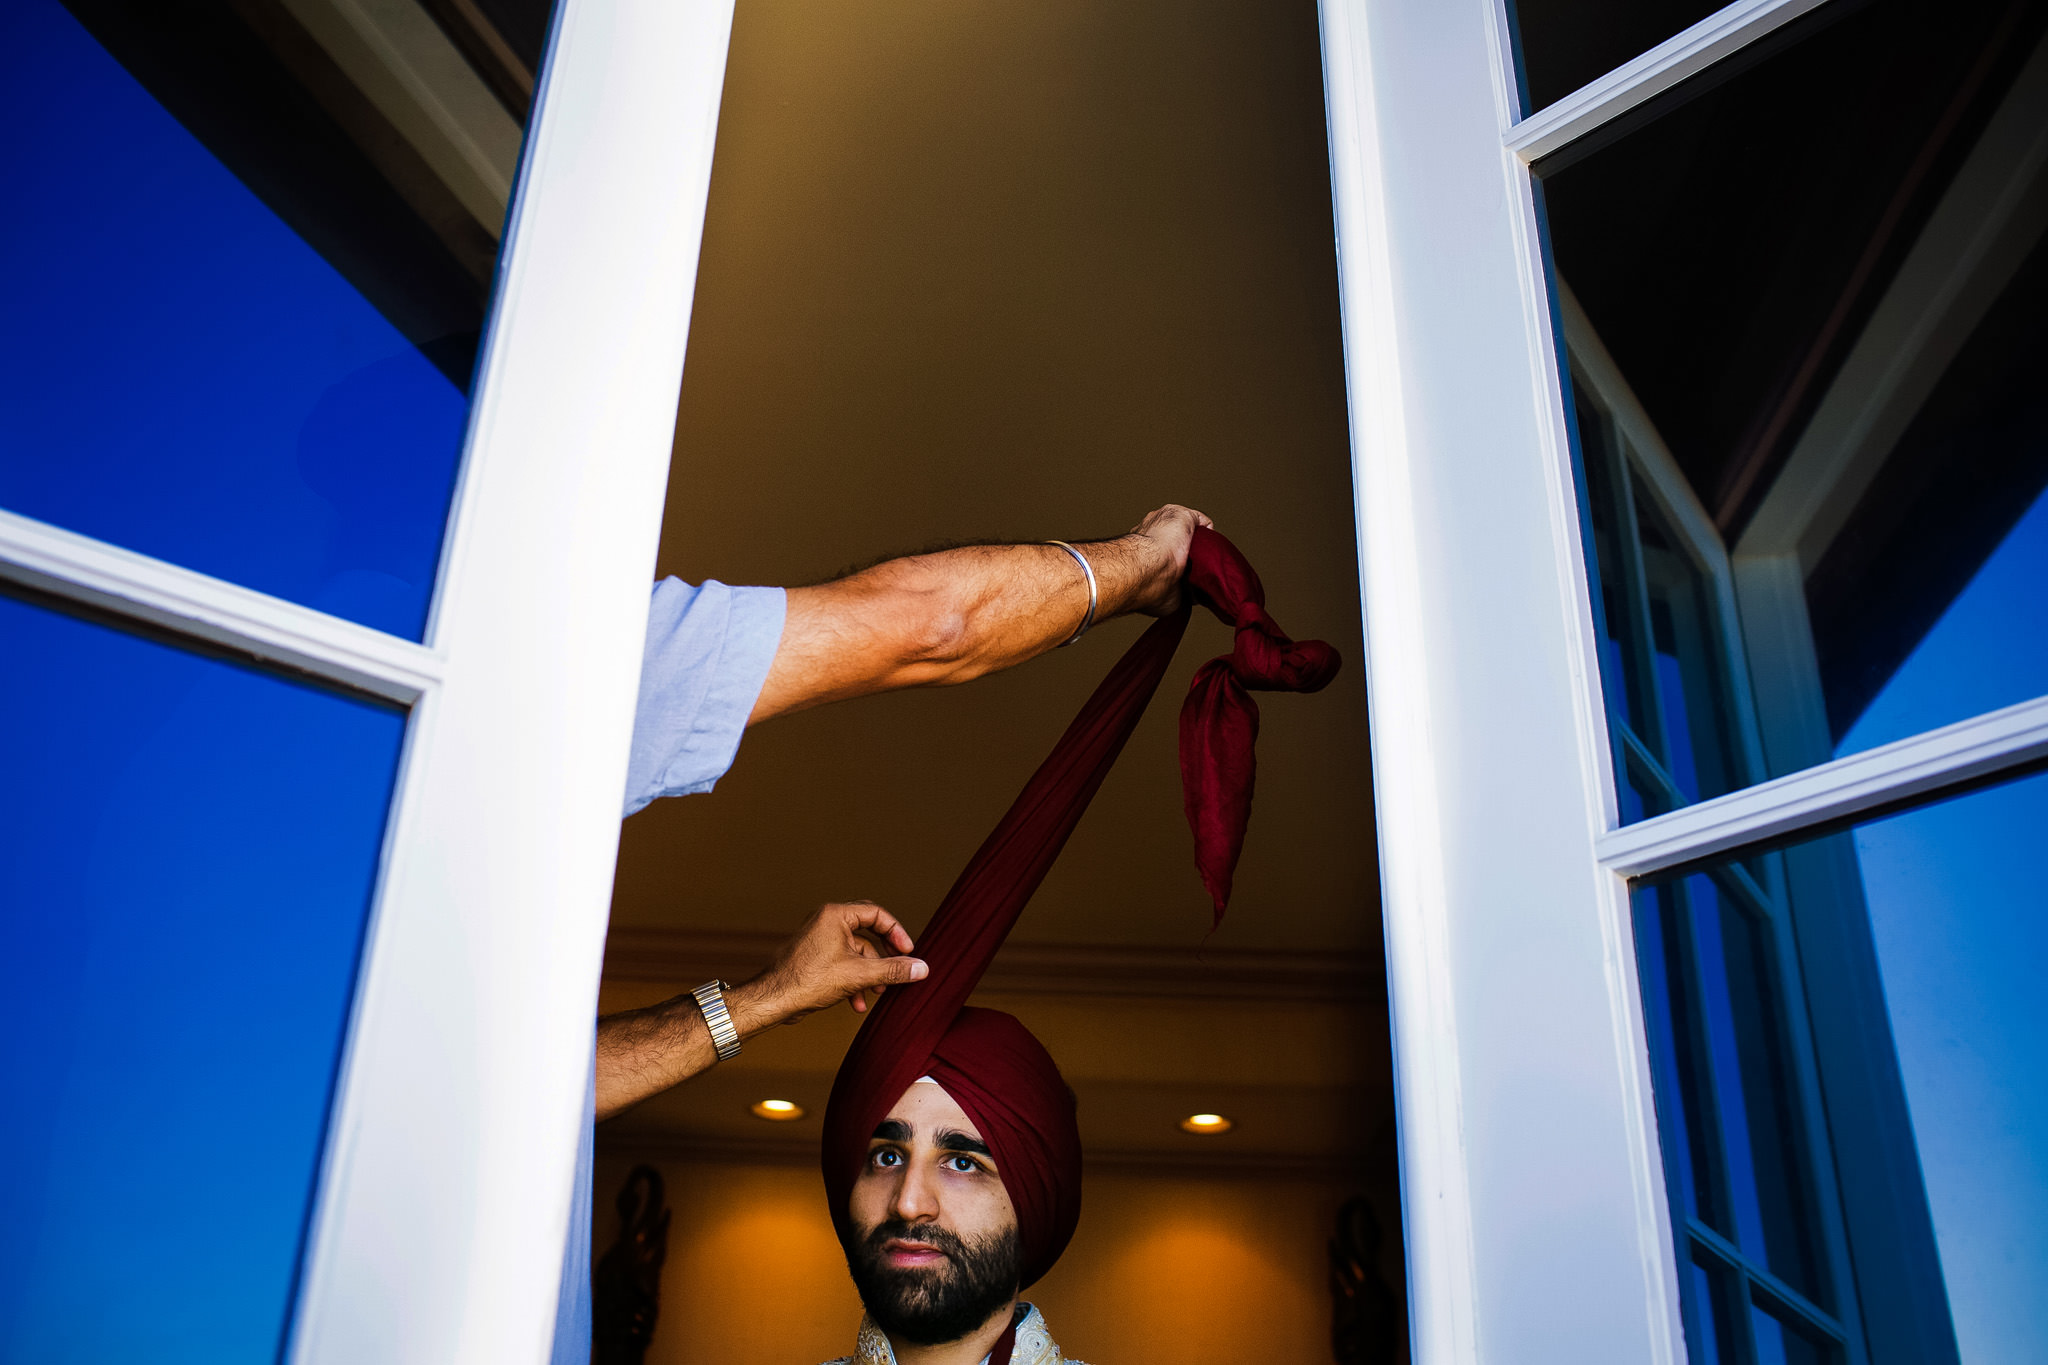 Meera and Amandeep's wedding in Palos Verdes, California.